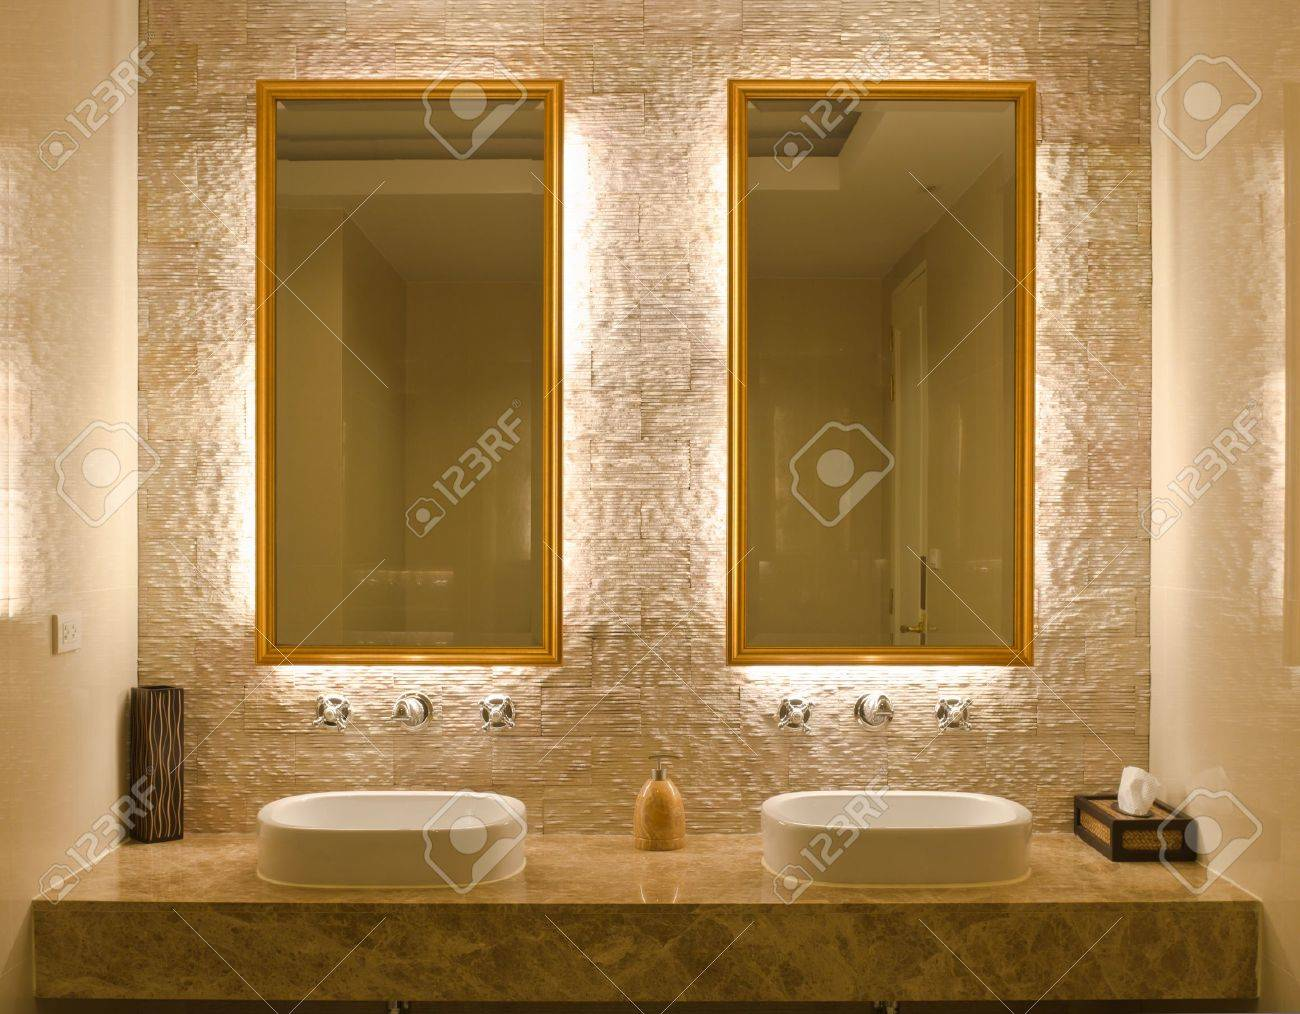 Modern Style Interior Design Of A Bathroom Stock Photo, Picture ...